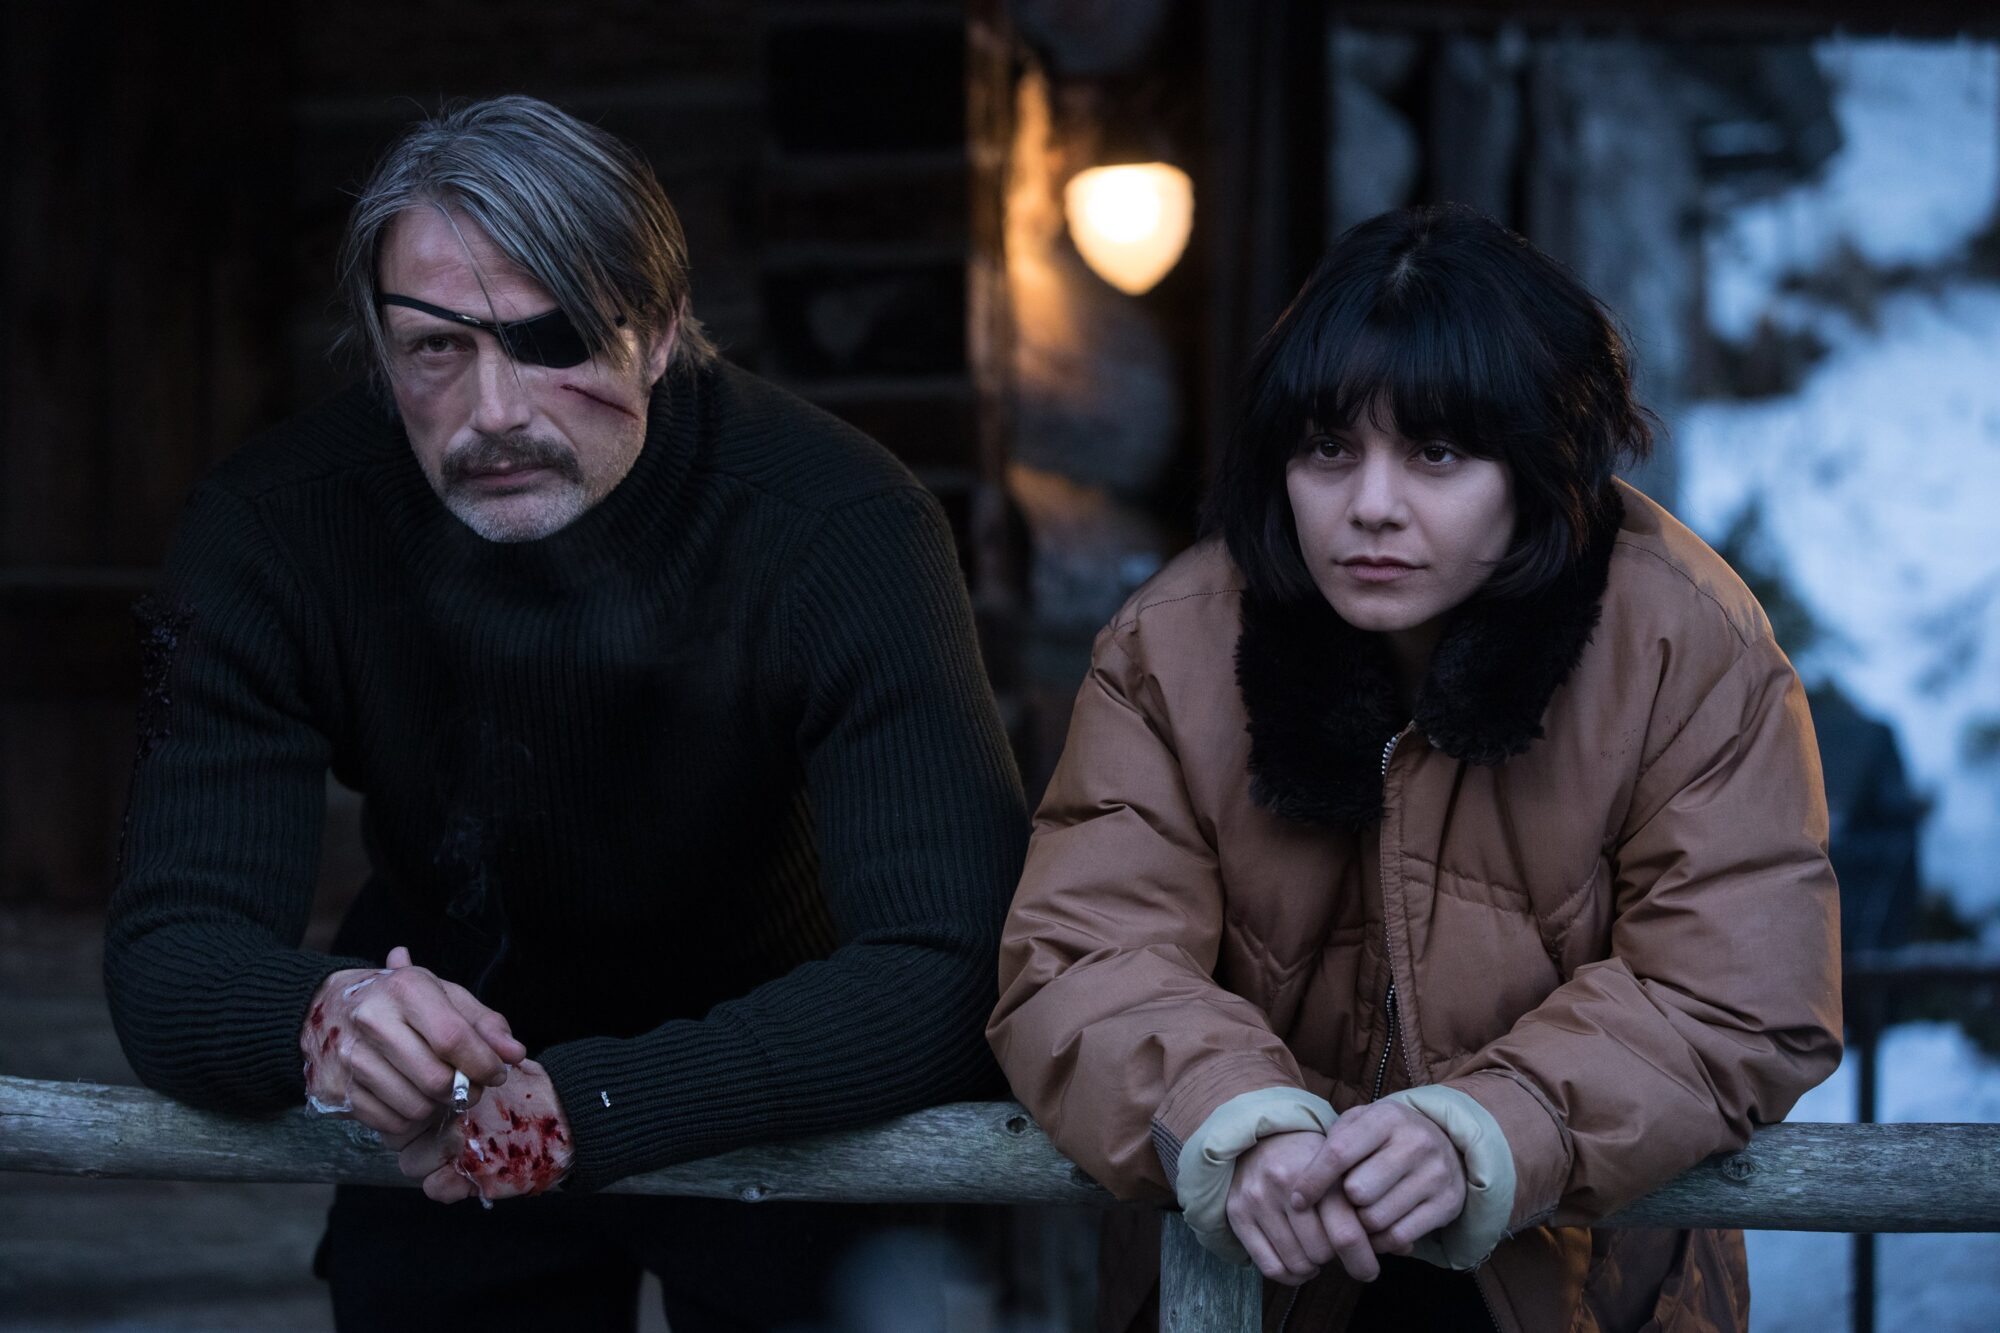 Movie Poster 2019: Review: Mads Mikkelsen Almost Saves Polar, Which Is Too